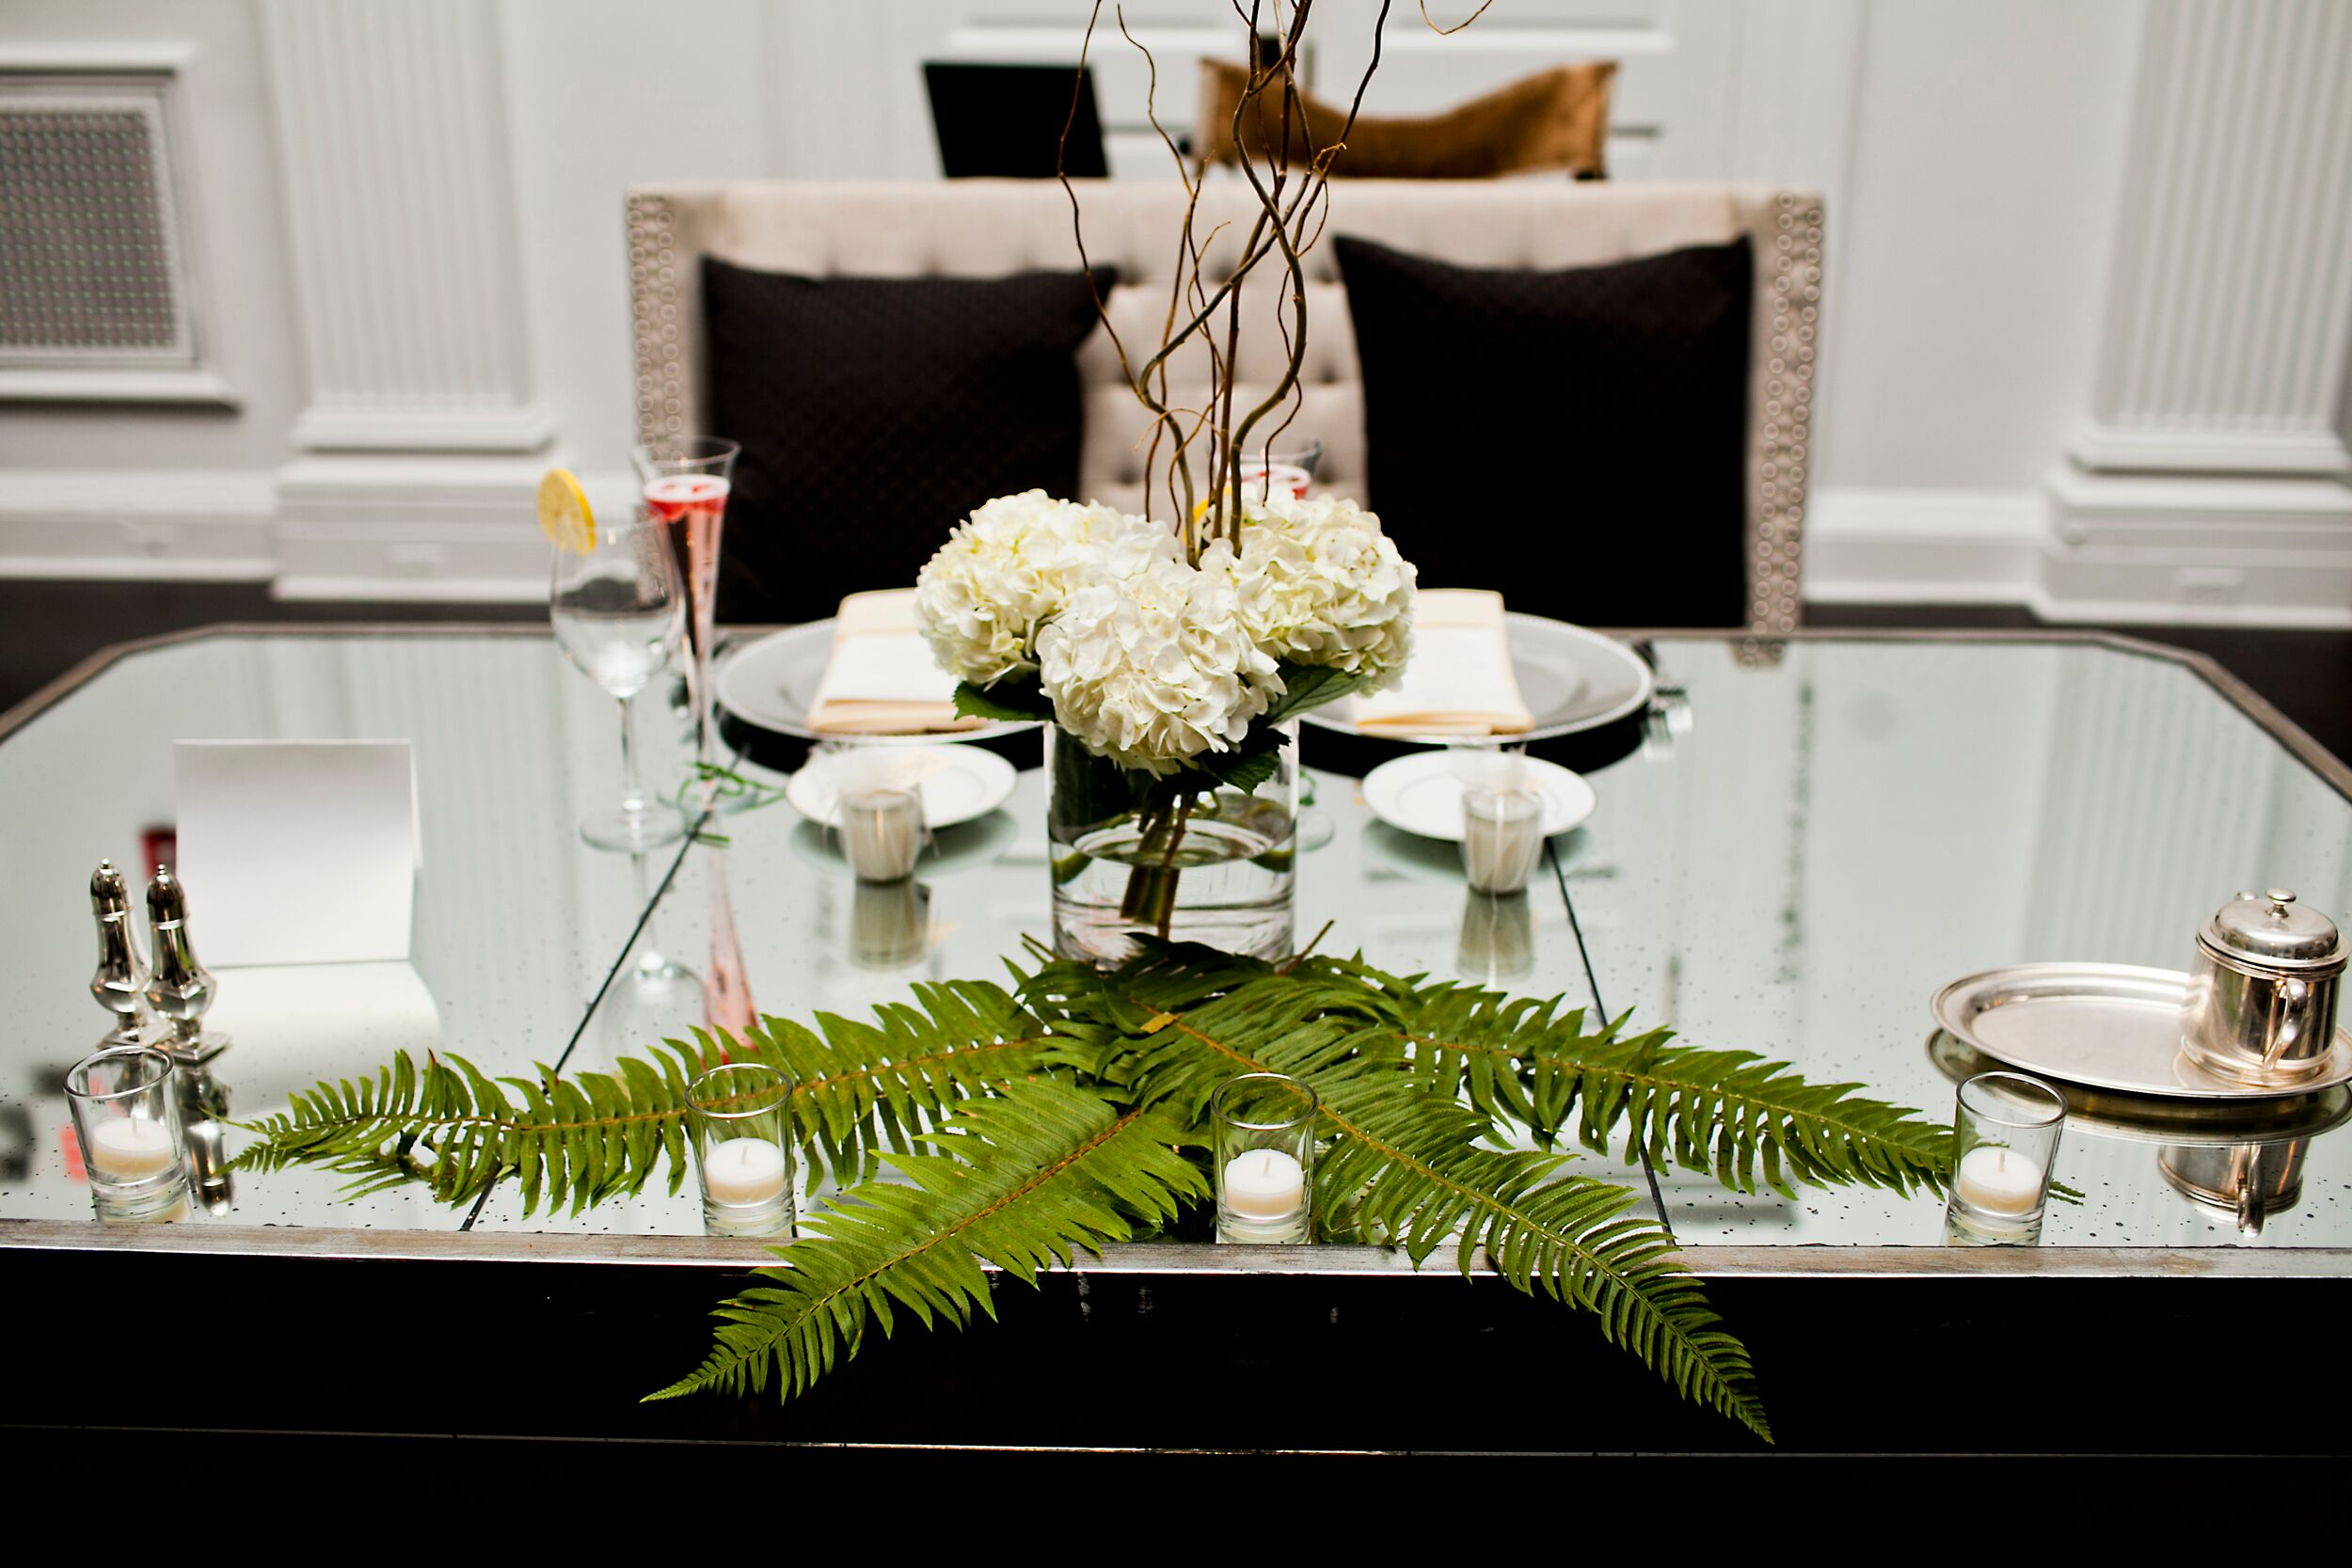 Centerpieces with curly willow branches hydrangeas and ferns